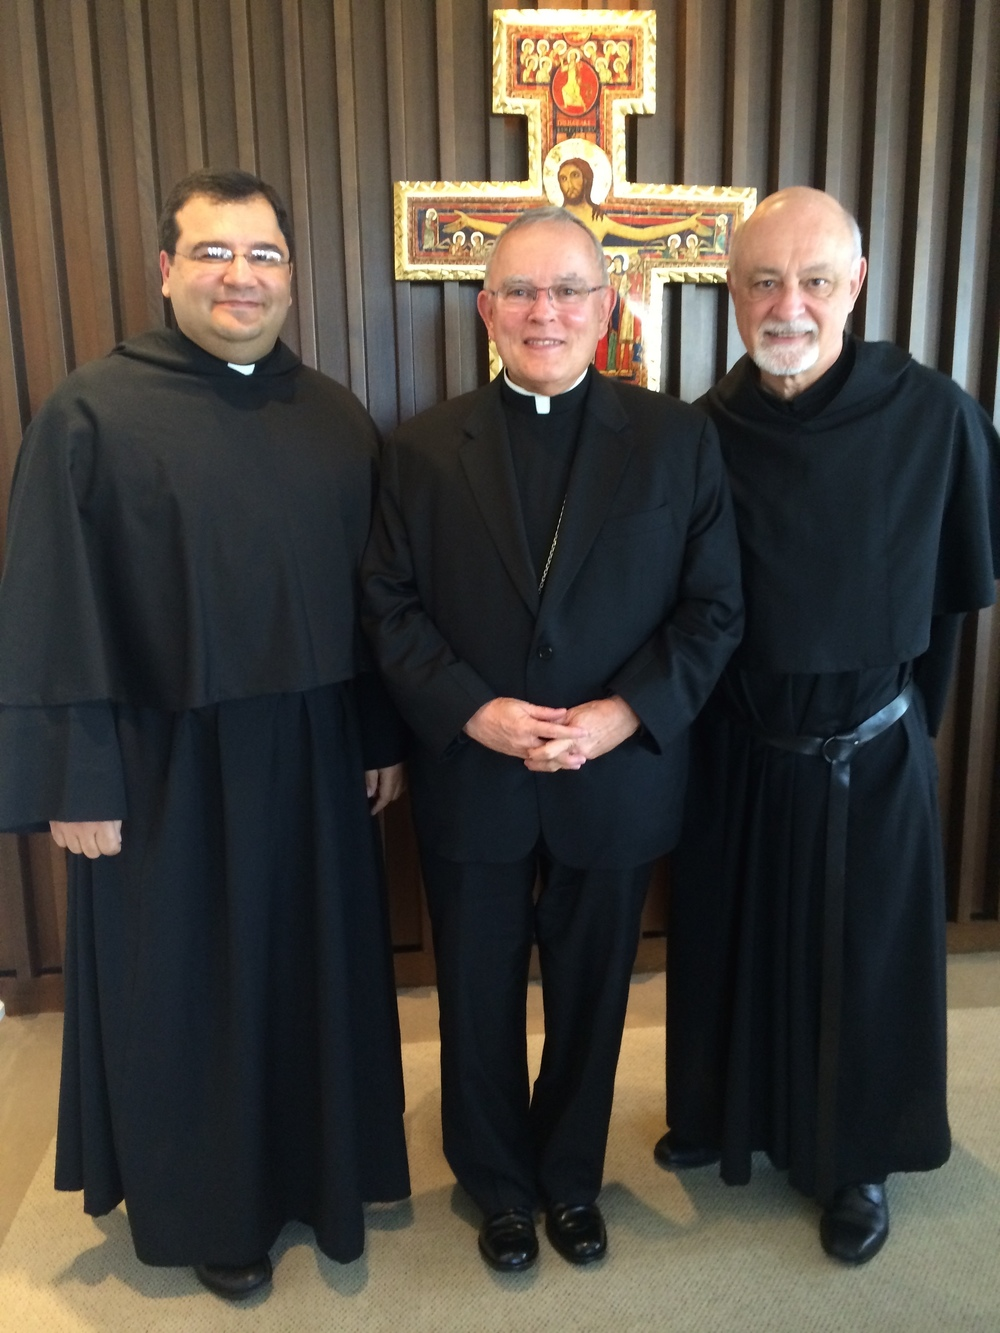 Joeseph Sciberras, O.S.A., Postulator General of the Oder of Saint Augustine, Charles Chaput, O.F.M. Cap., Archbishop of Philadelphia, and Michael Di Gregorio, O.S.A., Prior Provincial of the Province of Saint Thomas of Villanova.